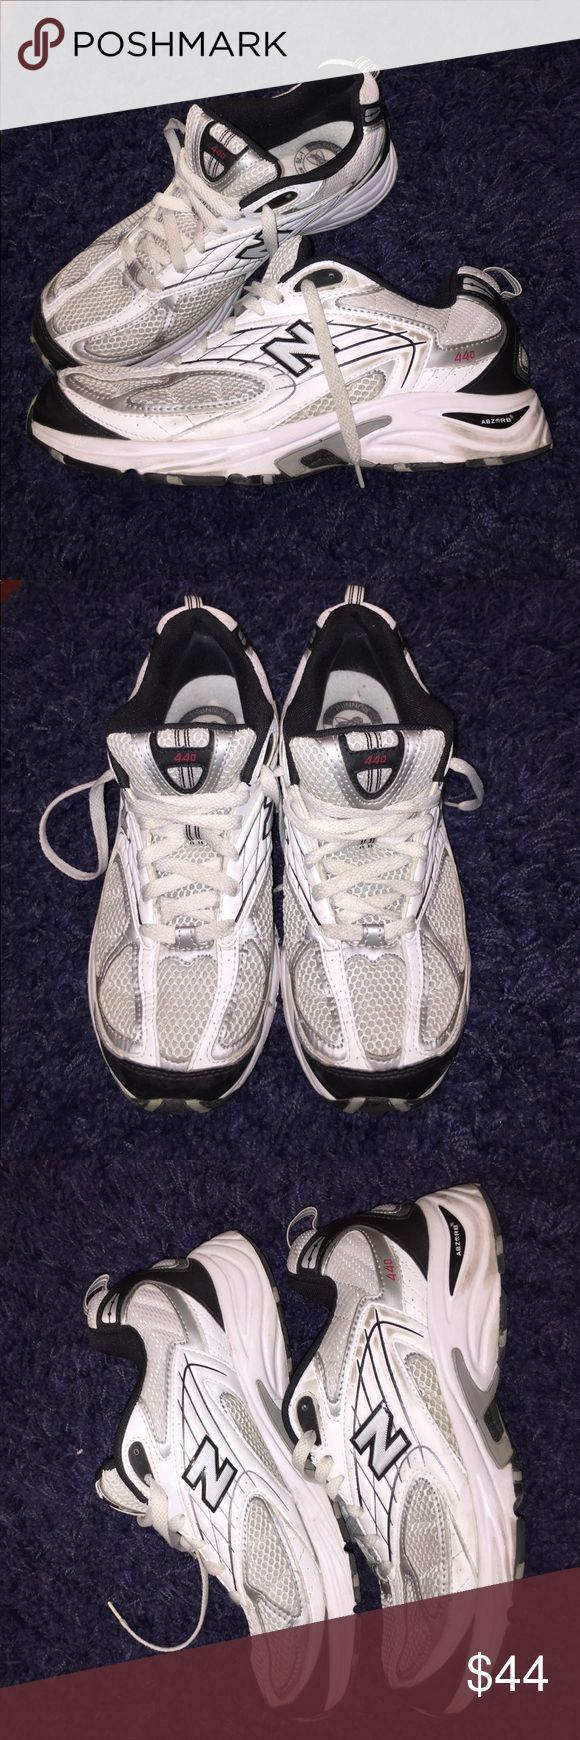 New balance Abzorb 440 running sneakers Worn but still good wearable condition new balance Abzorb 440 athletic running shoe. Size 8 in men's size 10 in women's. Any questions feel free to ask. Please double check size before purchase! New Balance Shoes Sneakers